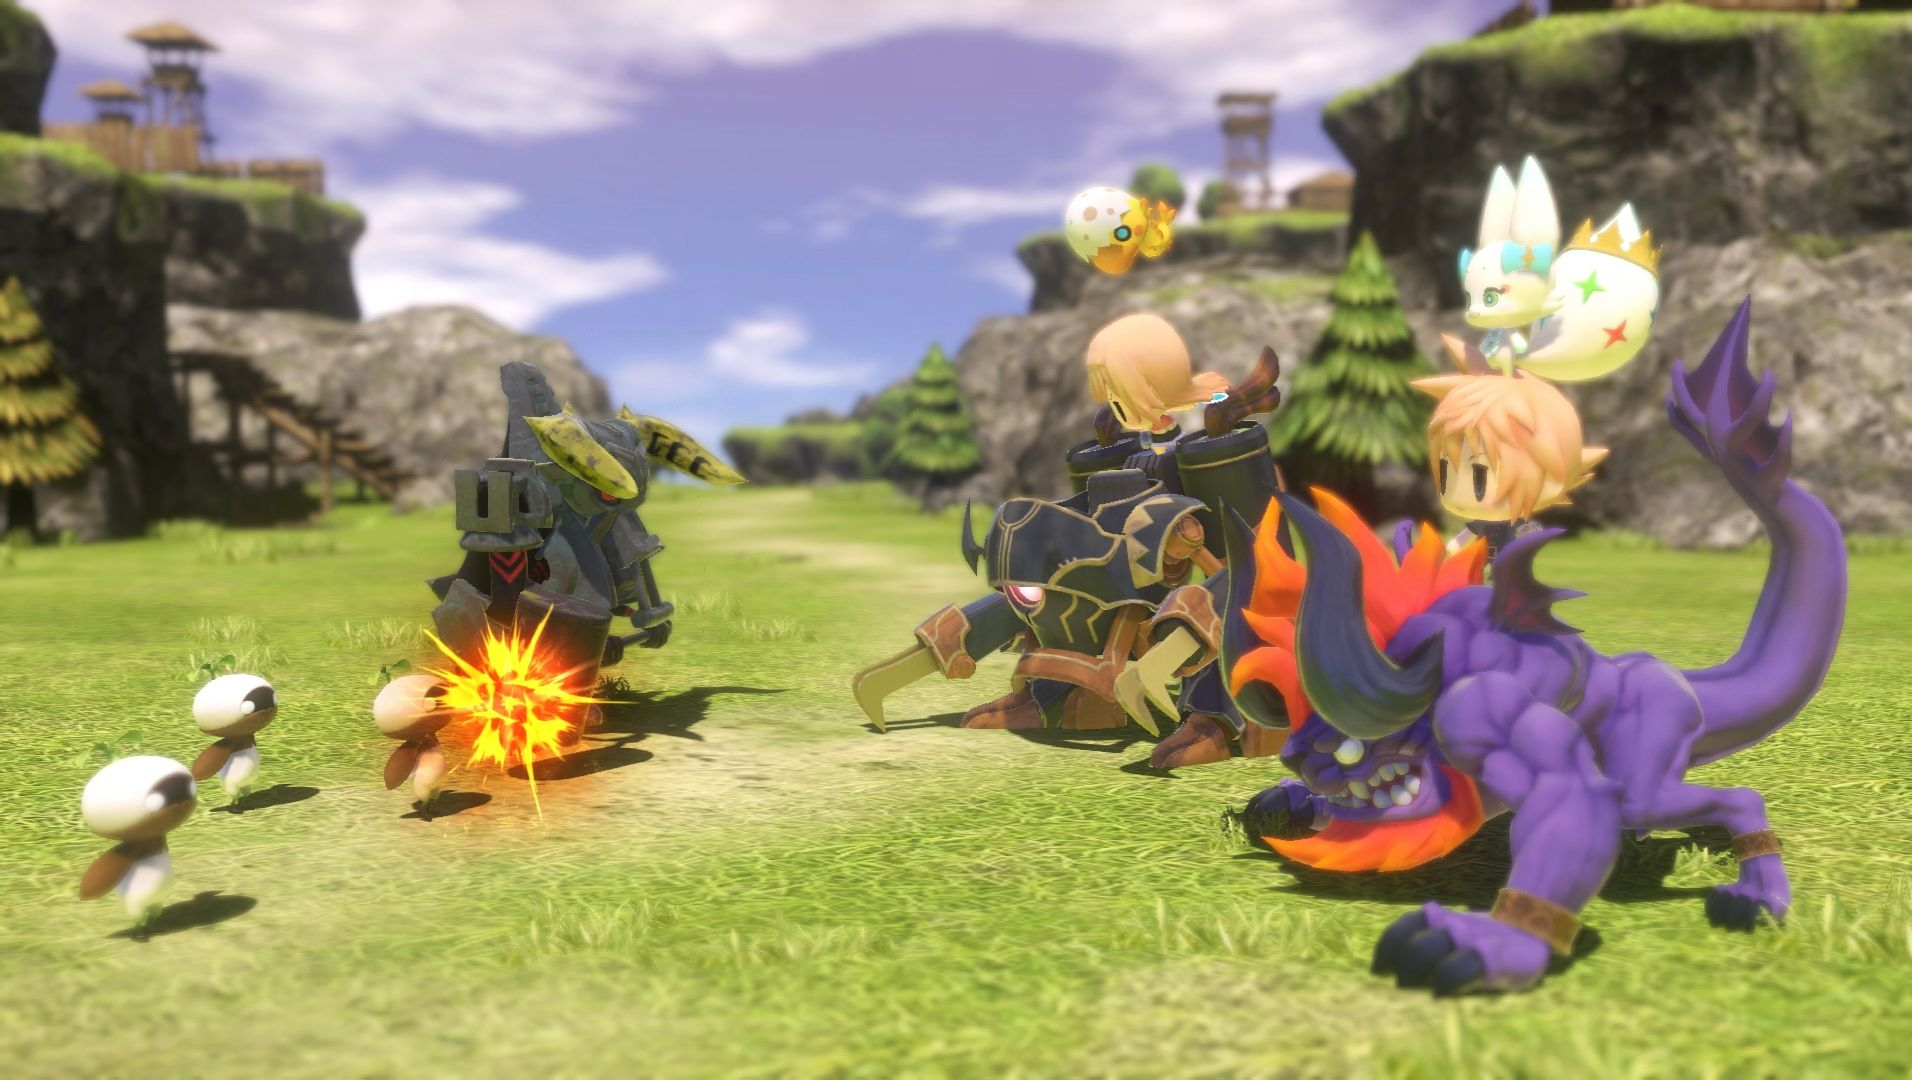 Modojo | World of Final Fantasy Patch Speeds Up The Action